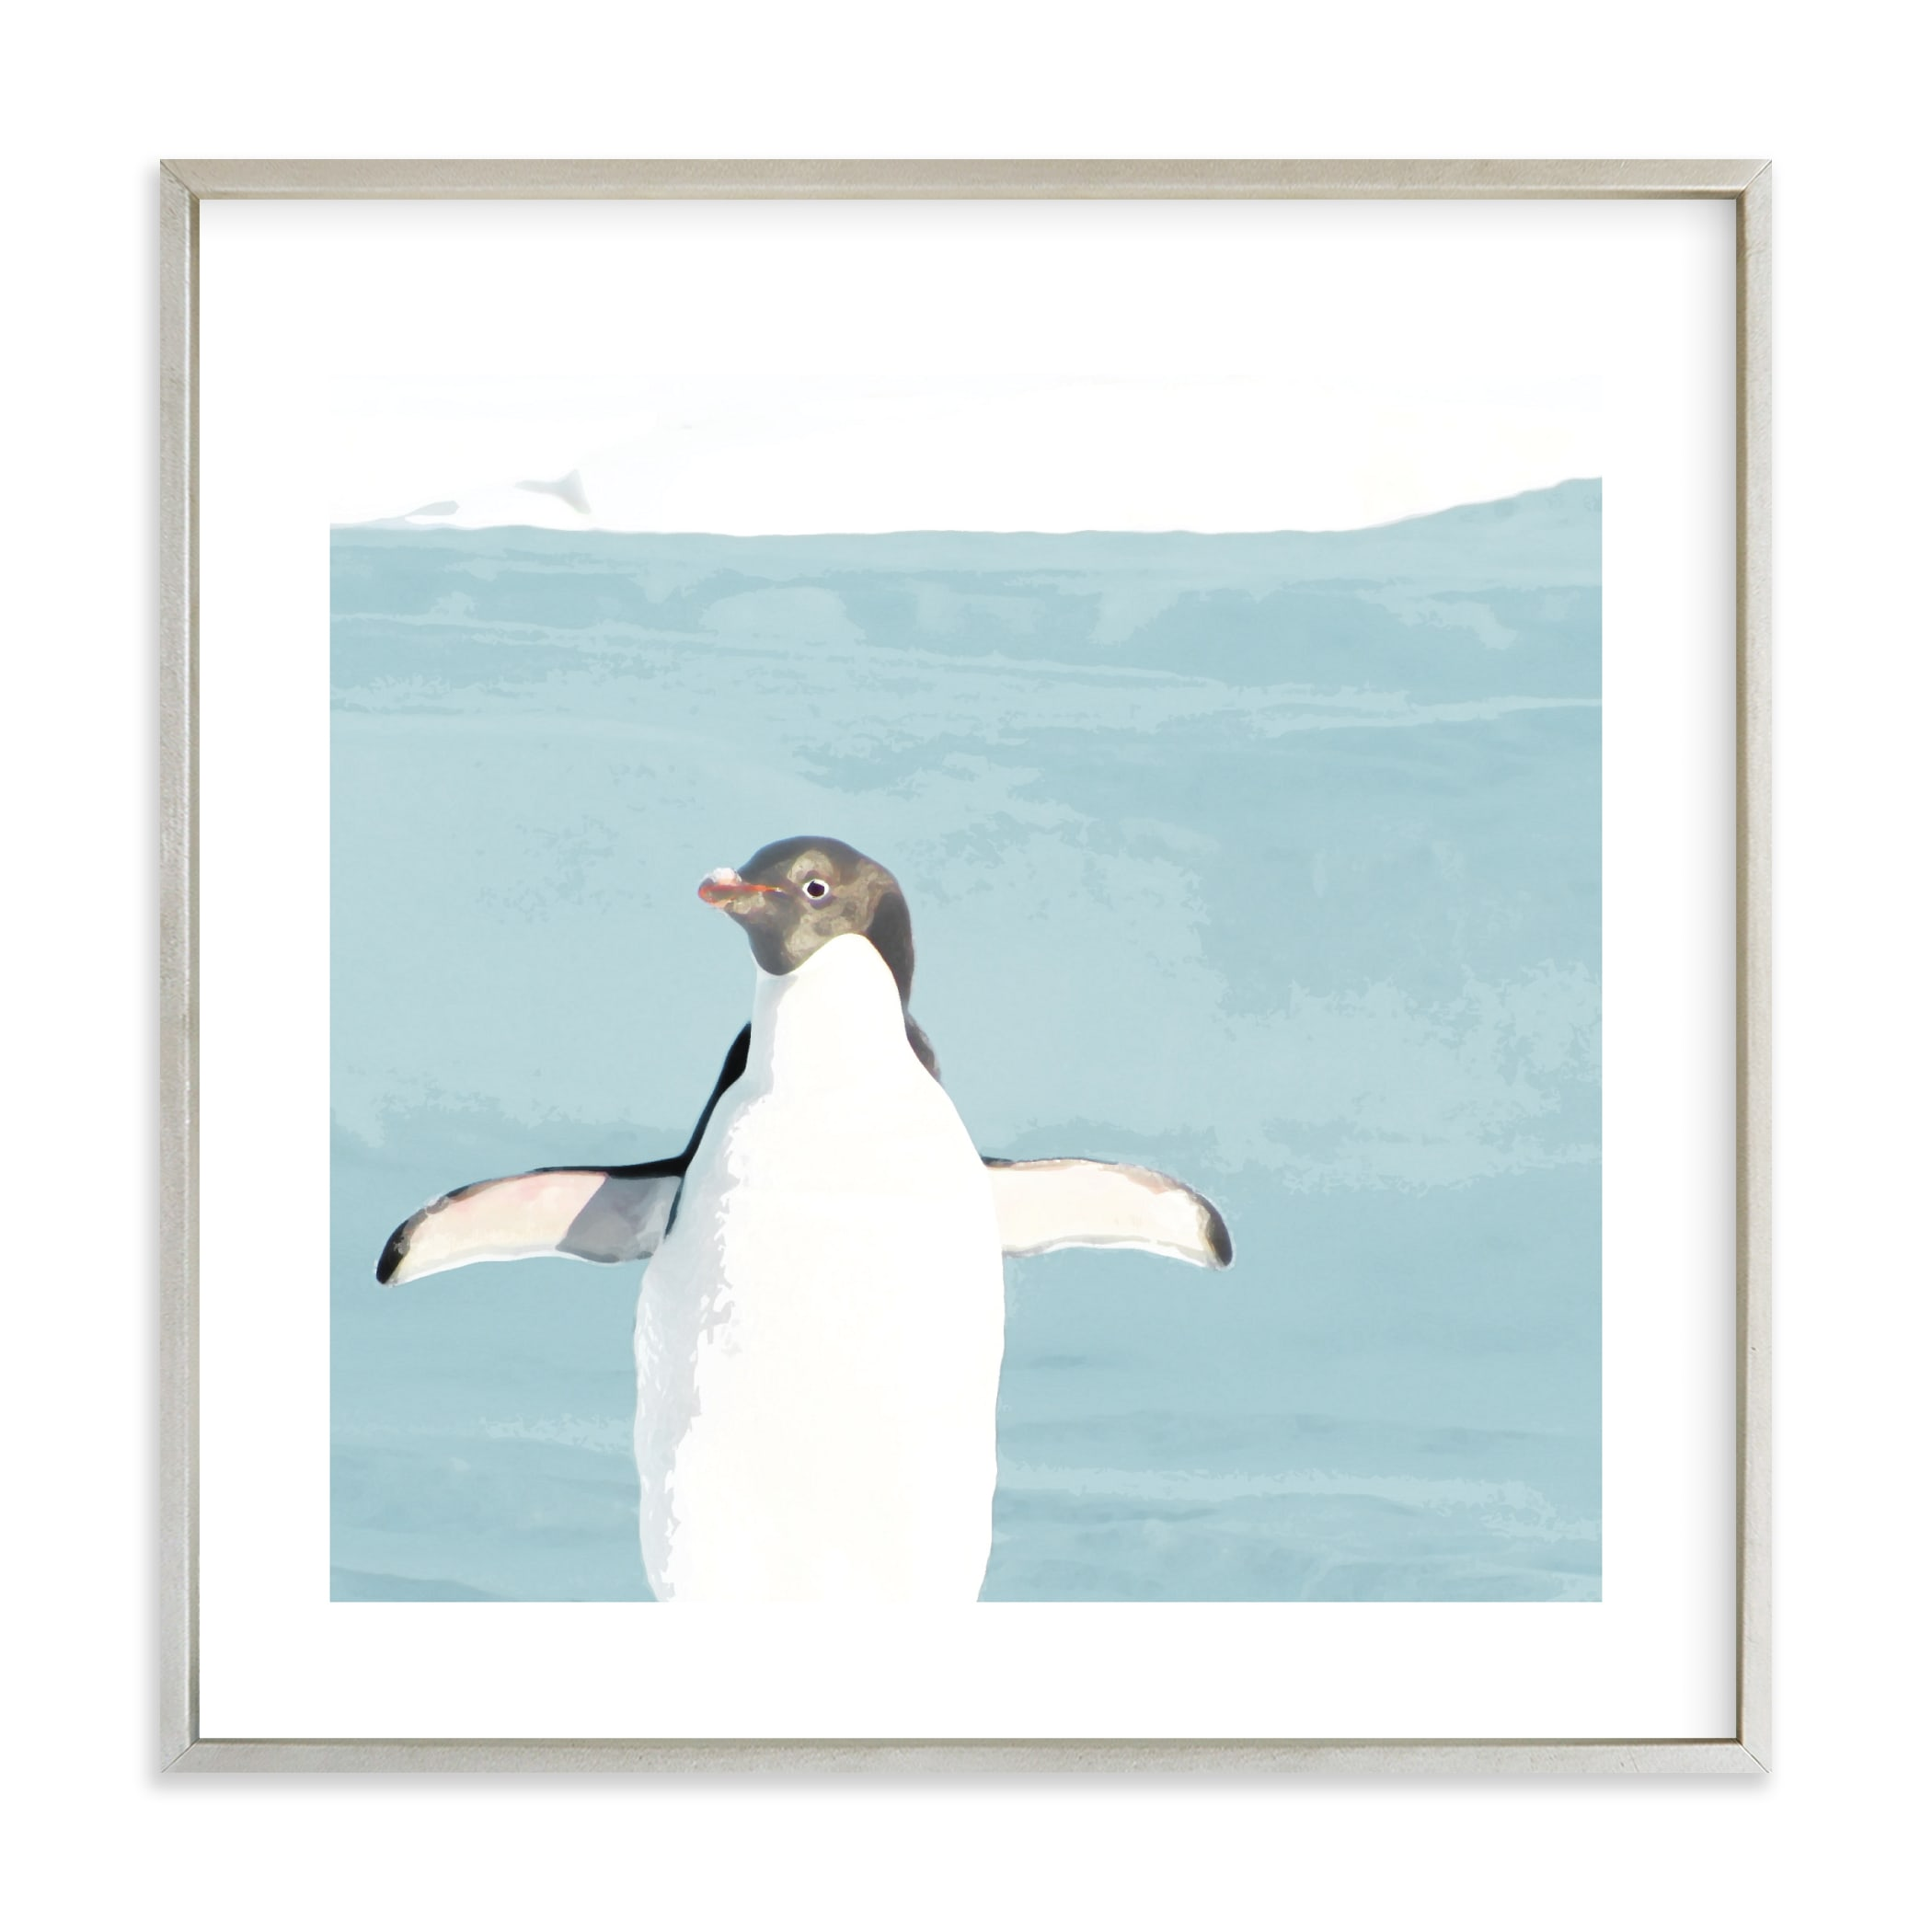 Naked Penguin Wall Art Prints by Michelle Poe | Minted